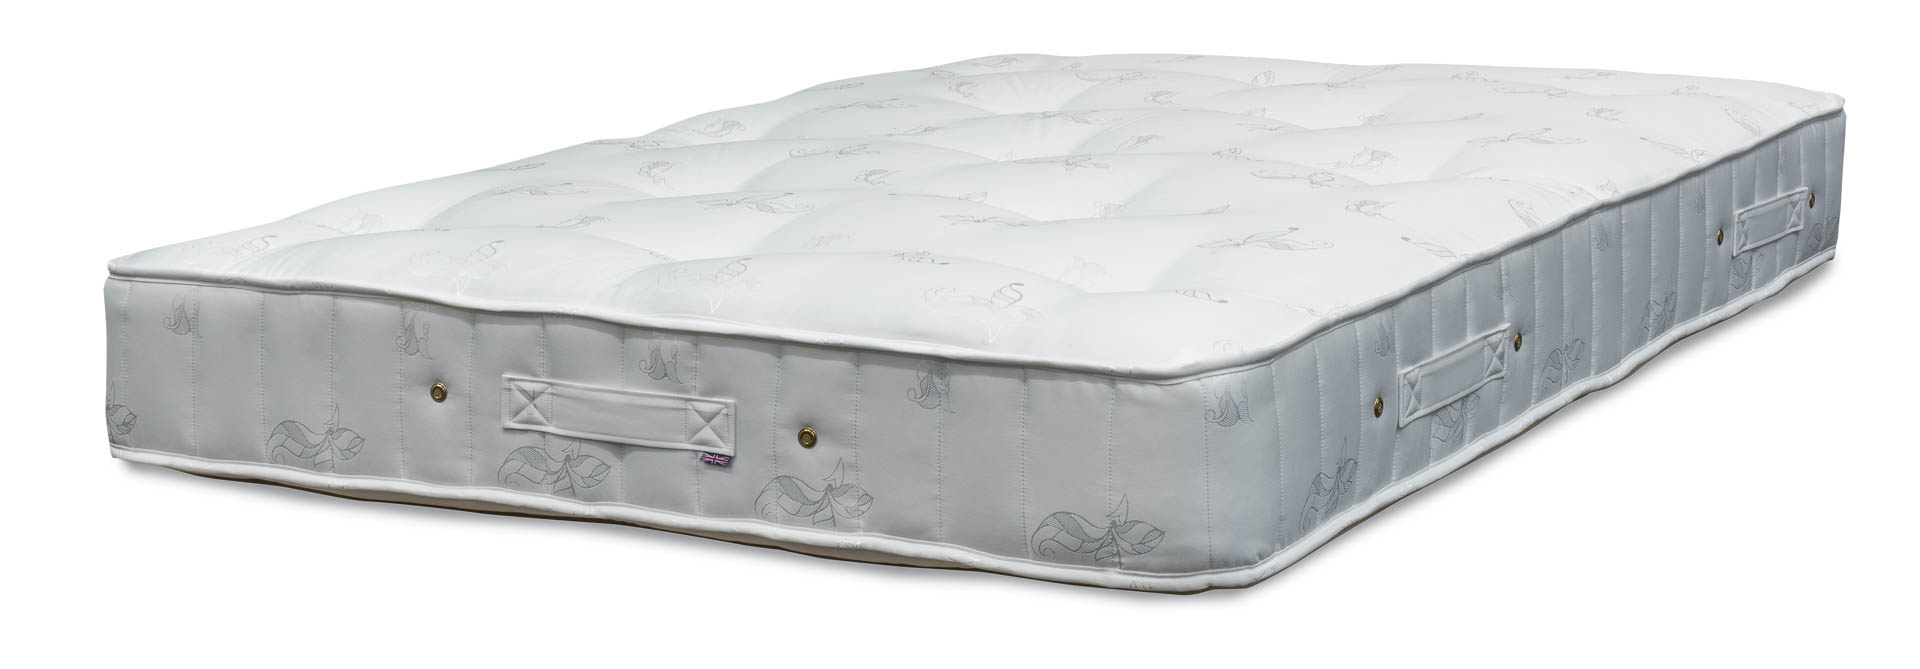 Pocket Sprung Mattress - KMFM